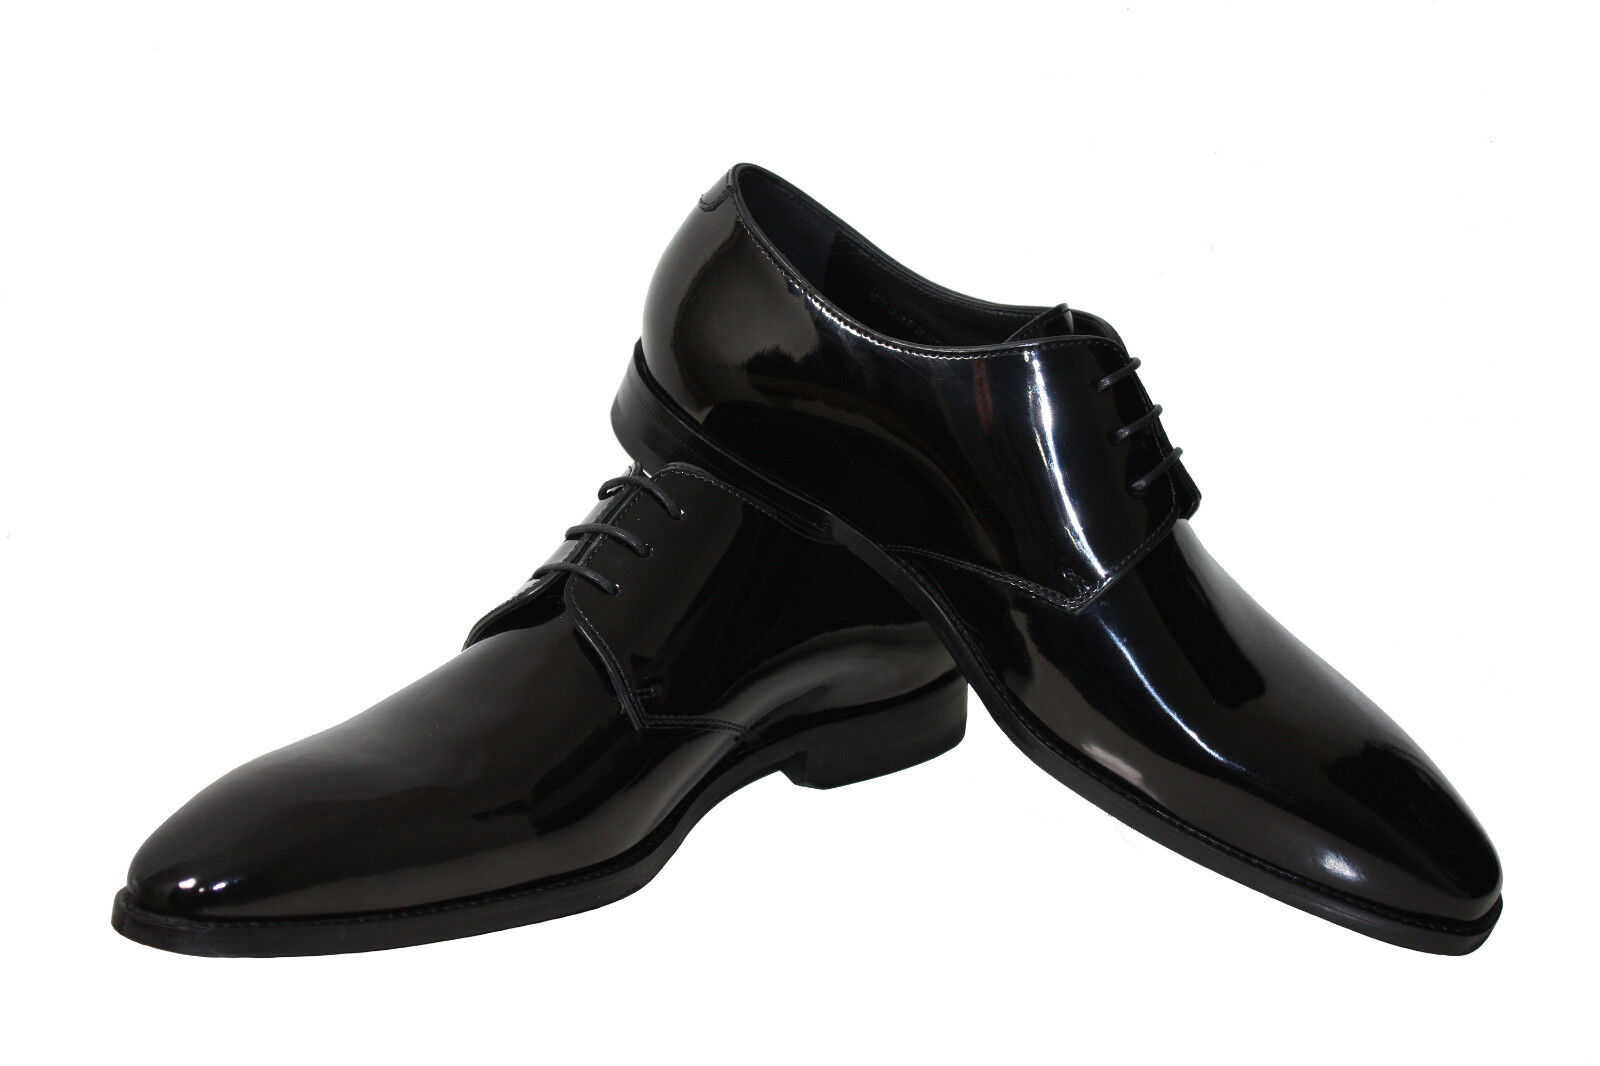 HUGO Business-Schuhe by HUGO BOSS Schuhe Business-Schuhe HUGO Gr. 43,5 UK 9,5 US 10,5 NEU Schuhes efa189